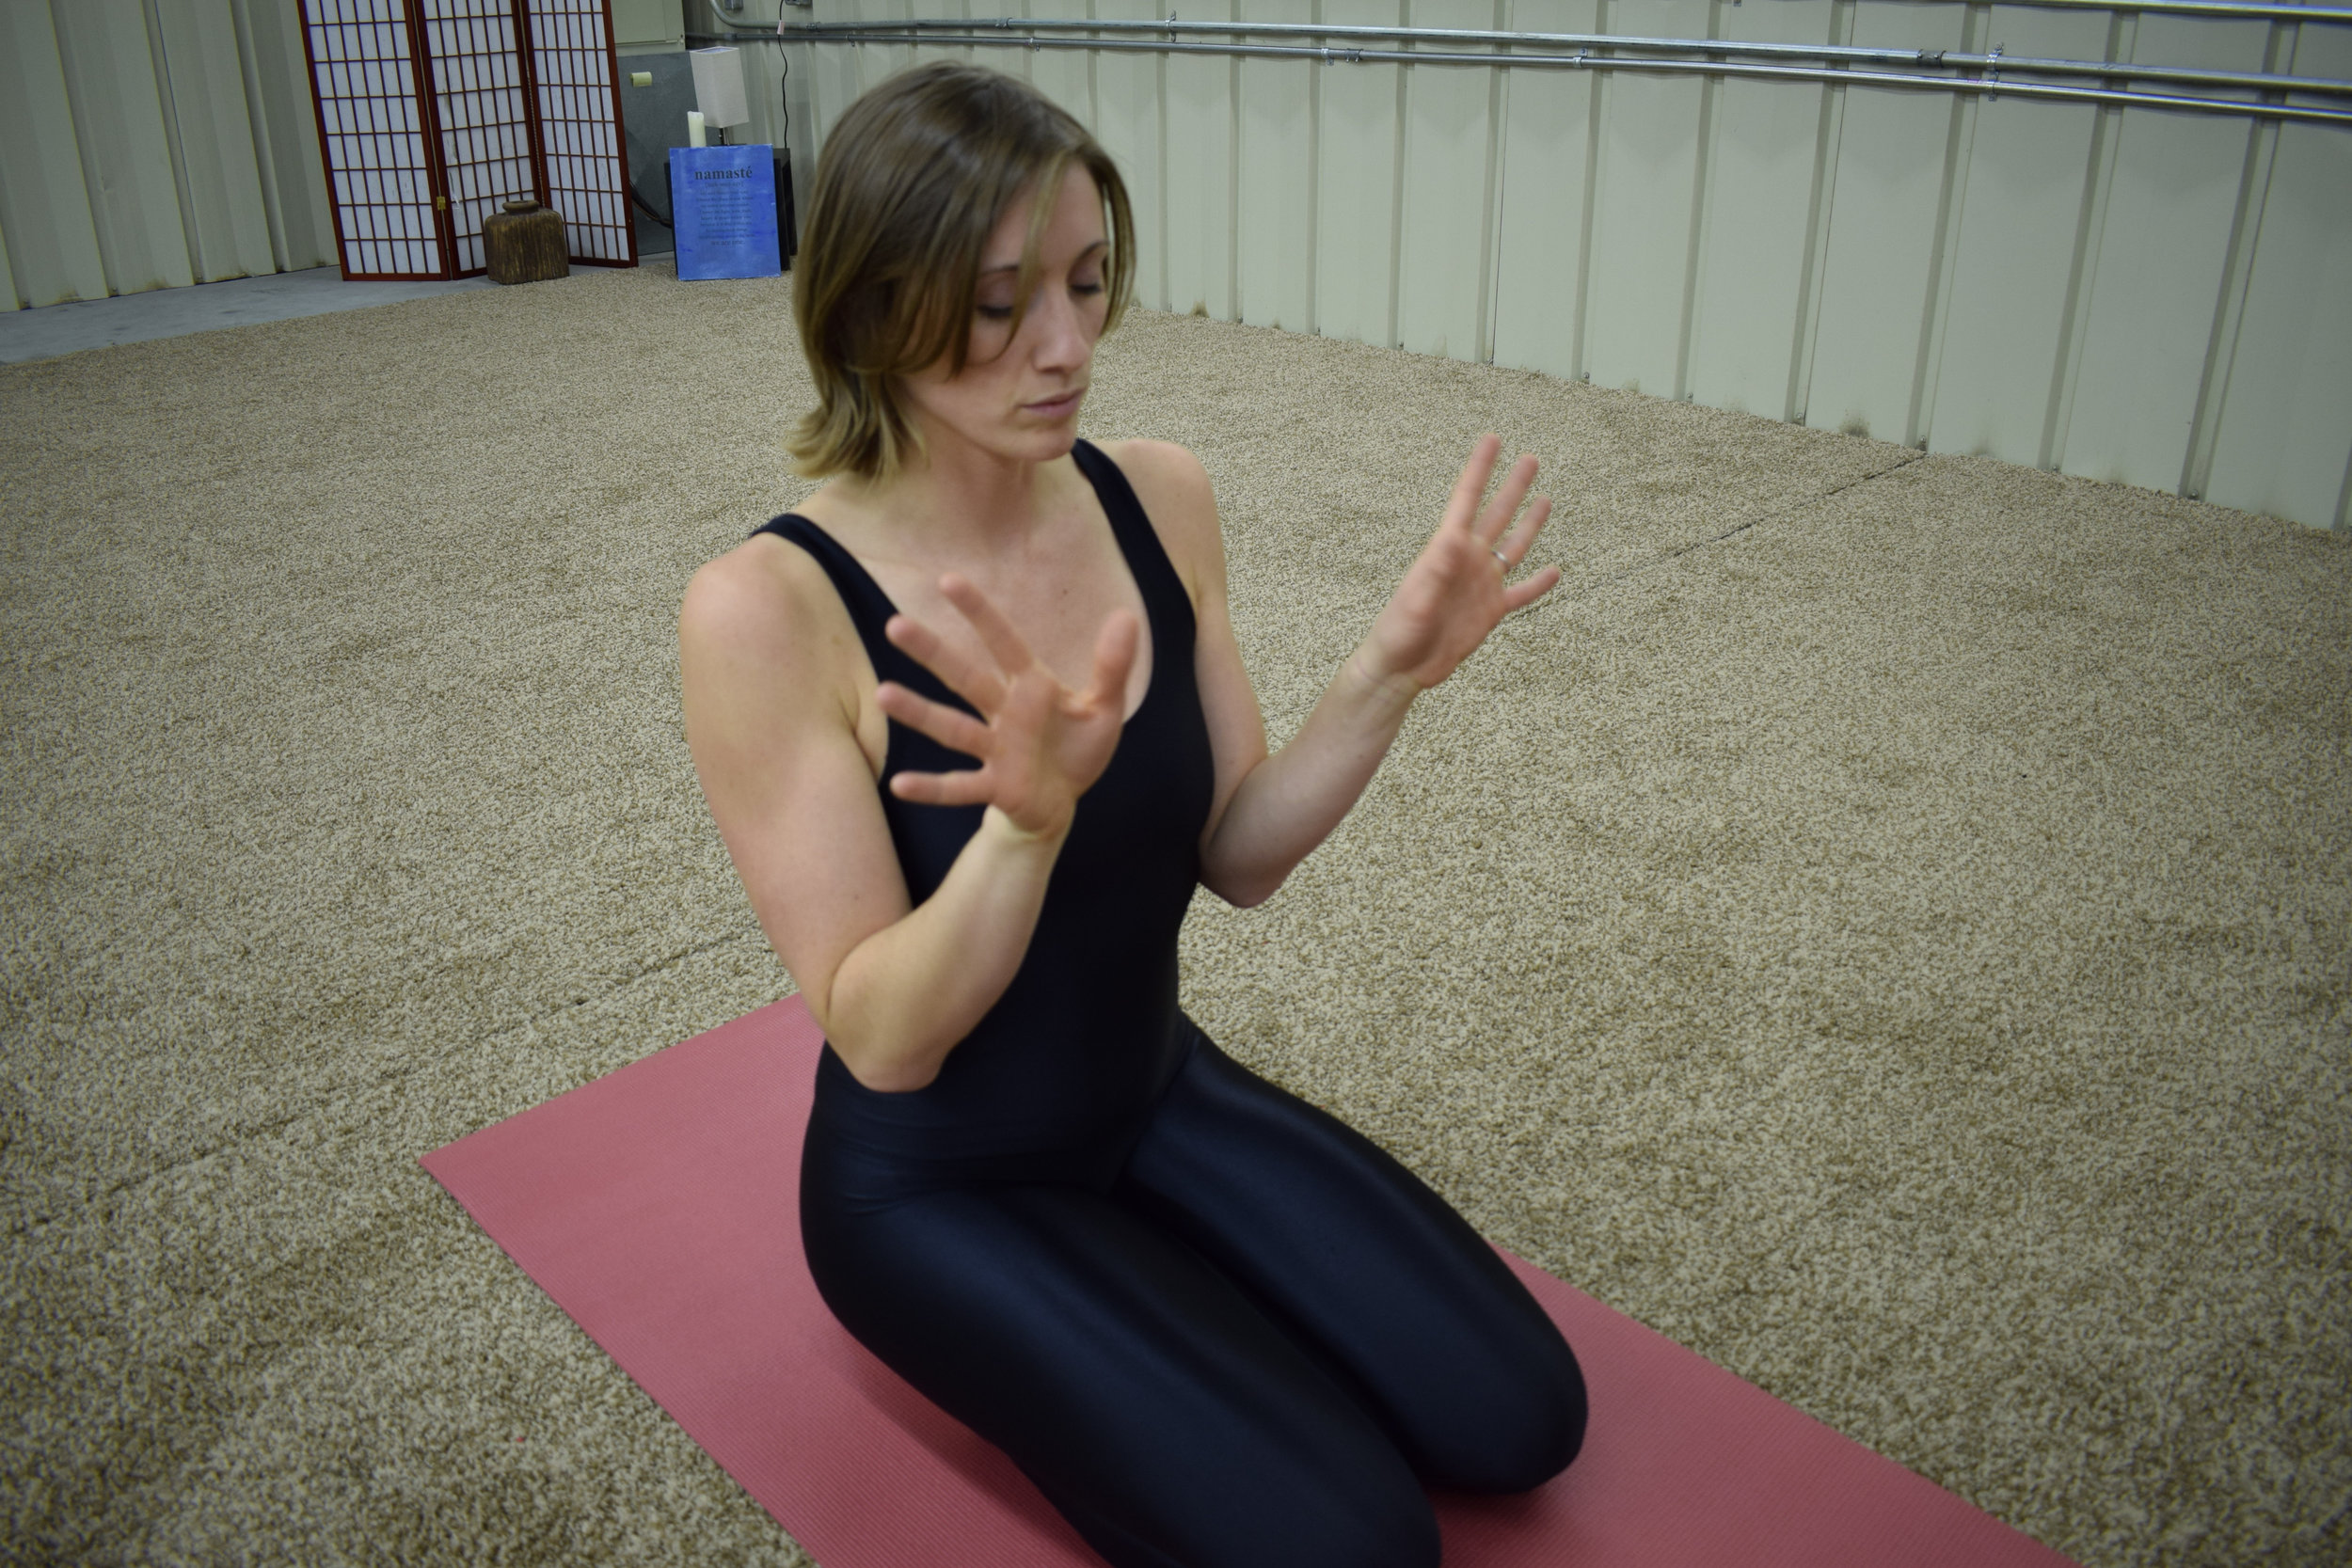 Figure 3: SLOWLY rotate the wrists to increase blood flow and consciously explore movement in the wrists.